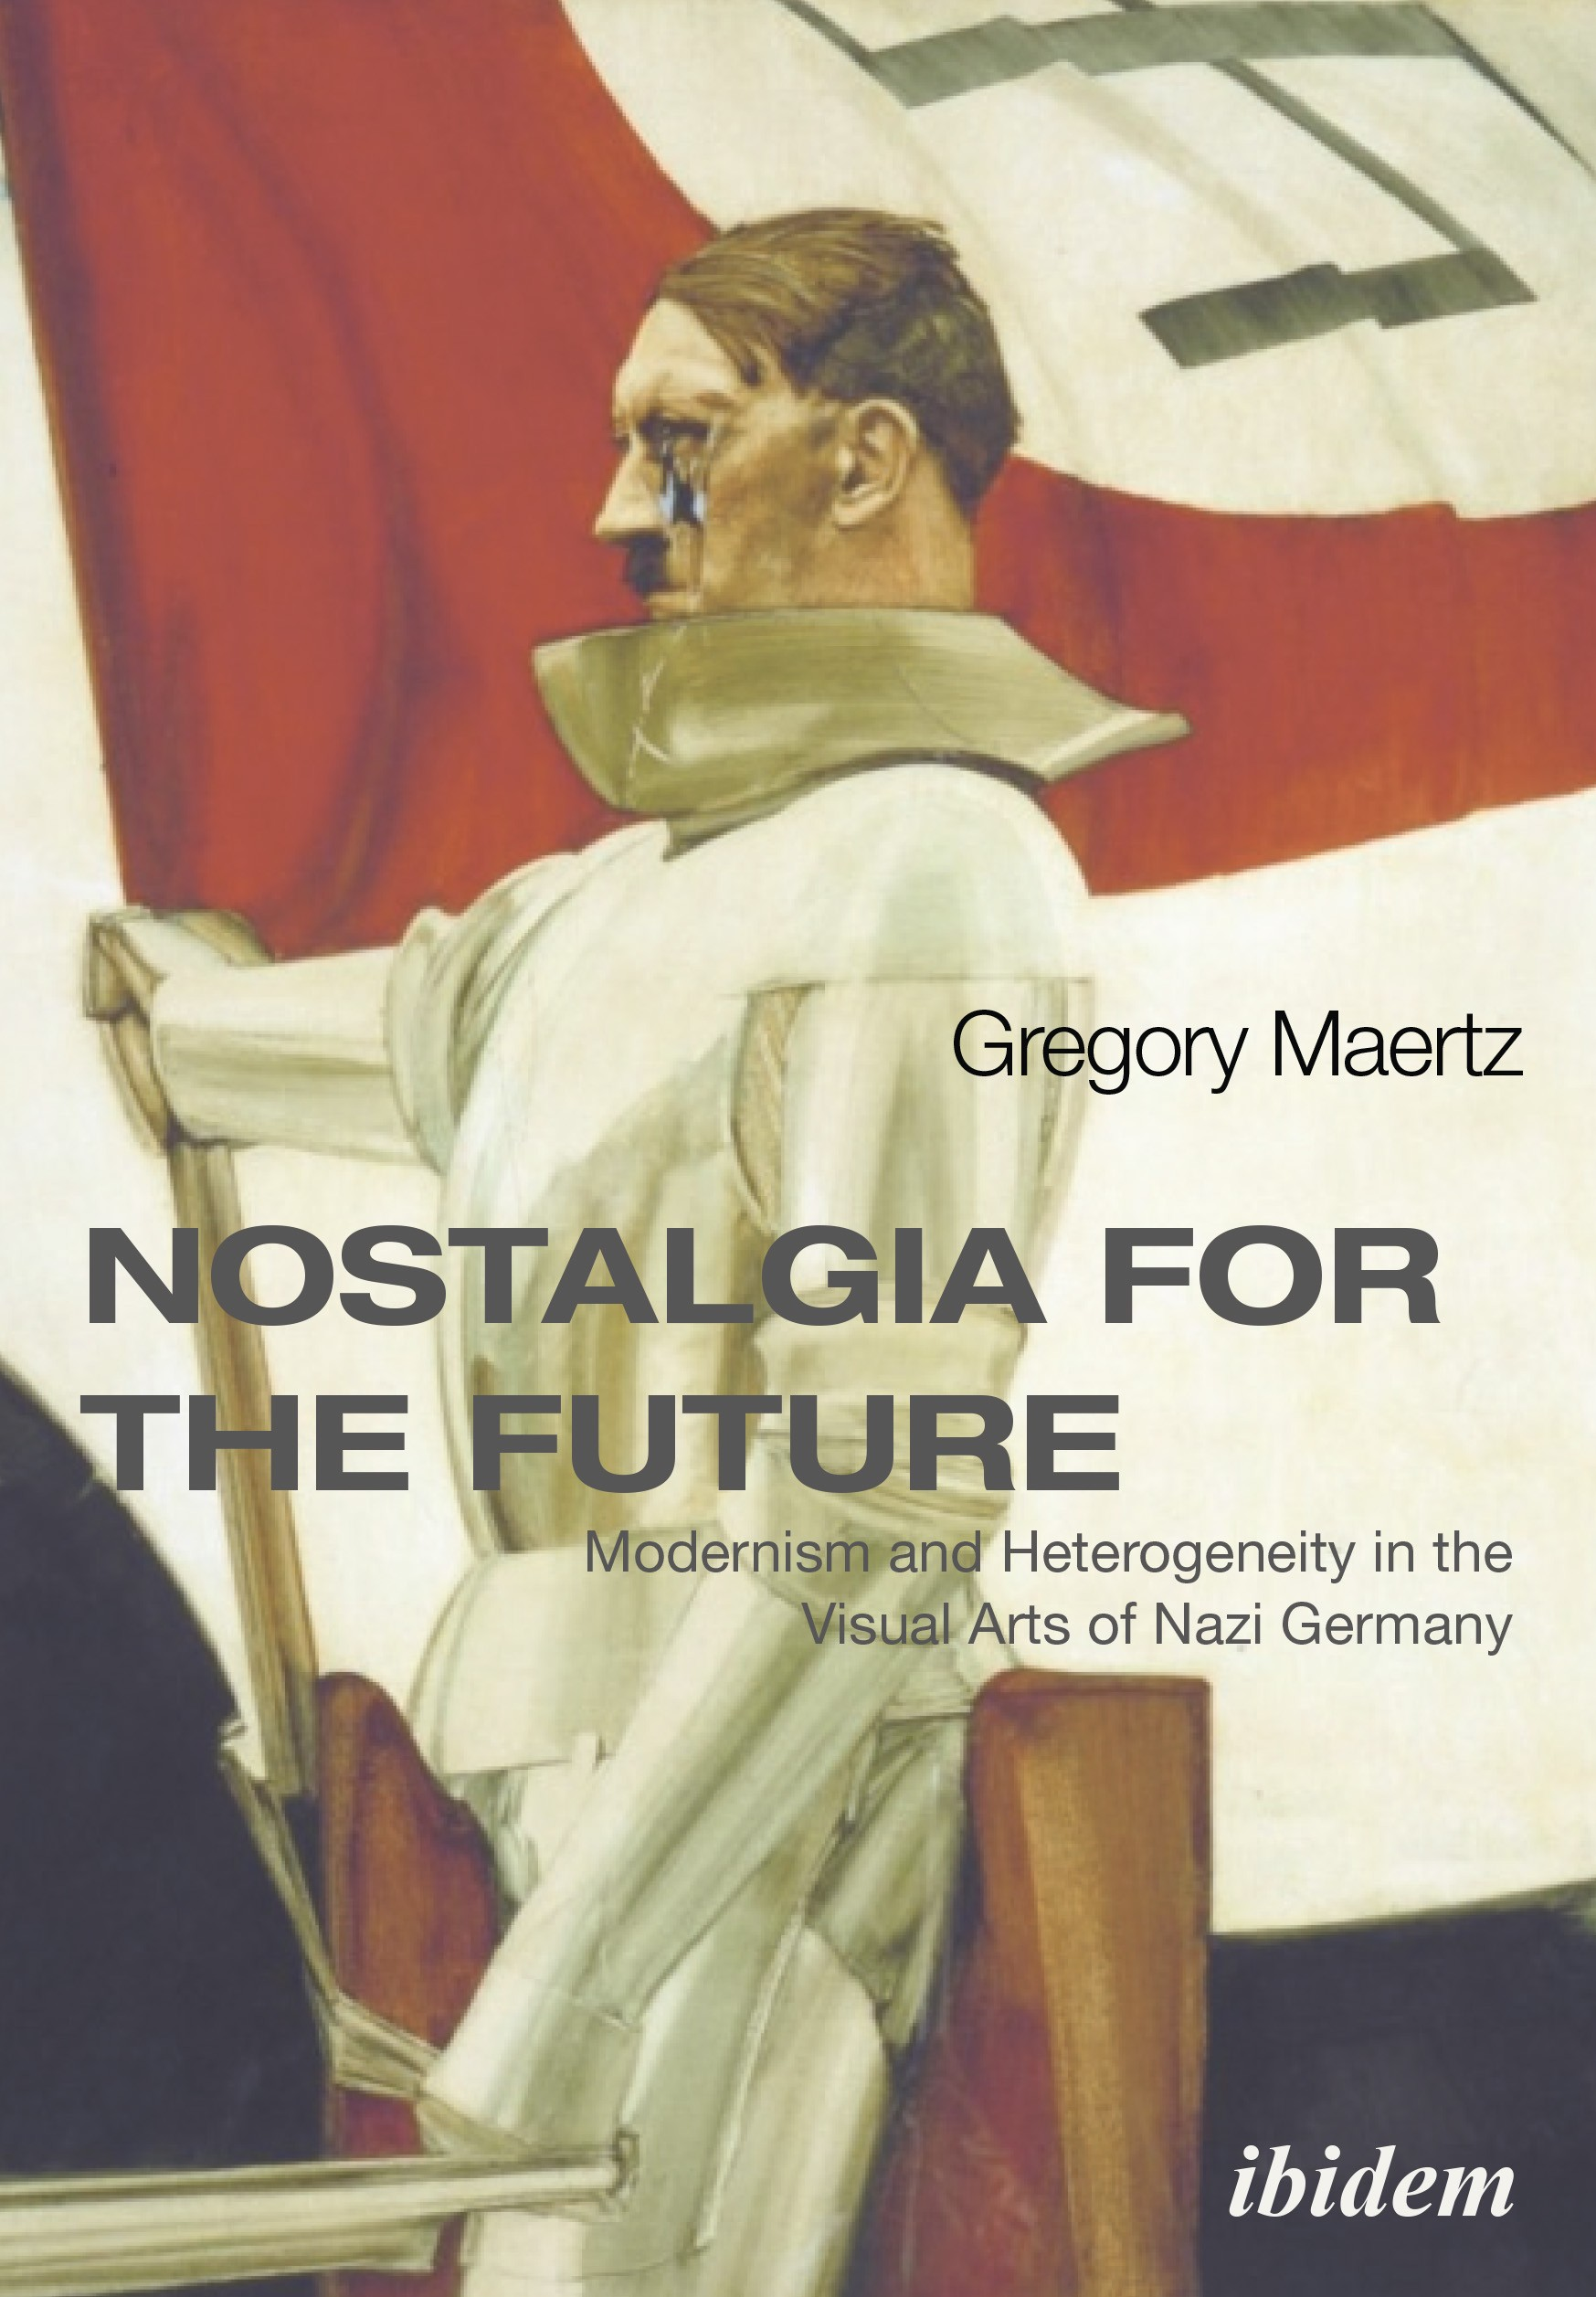 Nostalgia for the Future: Modernism and Heterogeneity in the Visual Arts of Nazi Germany